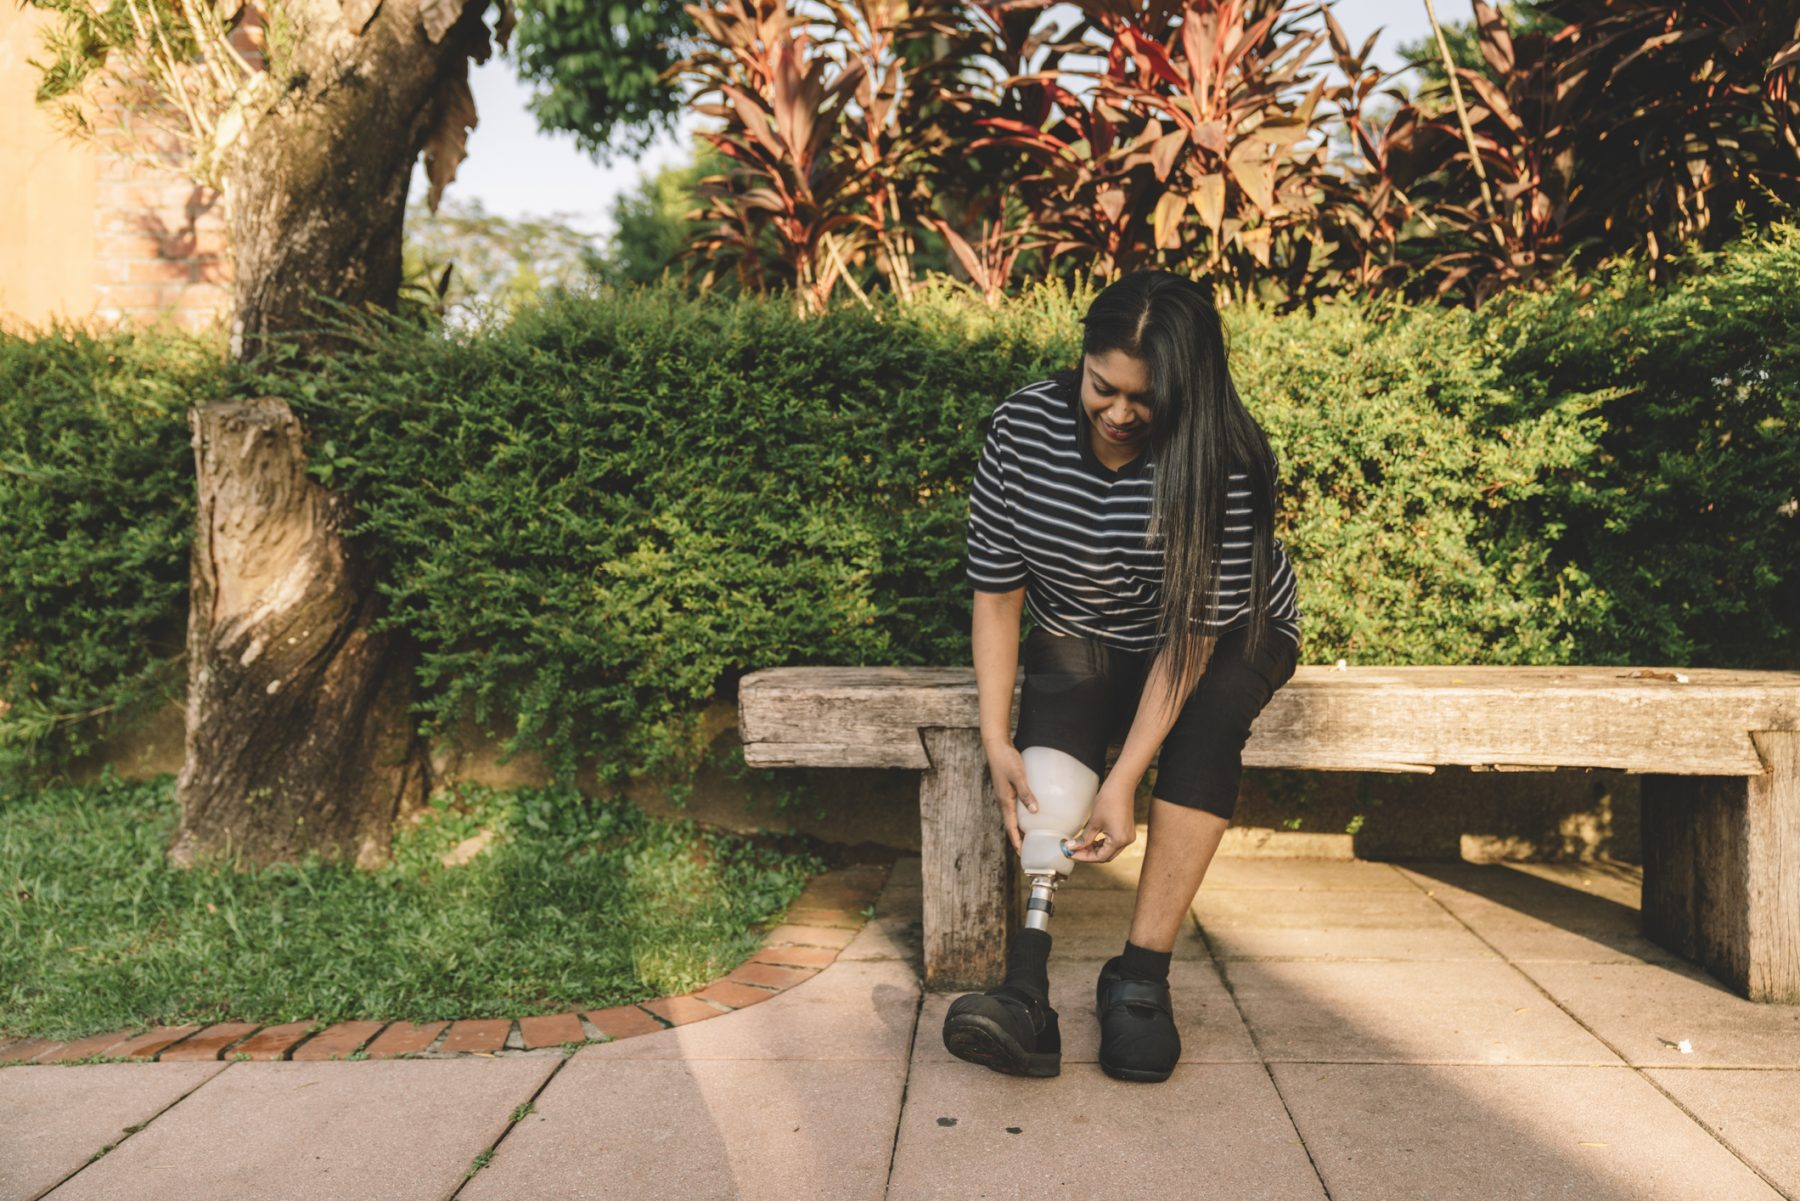 A woman with a prosthetic leg taking a walk in Los Angeles